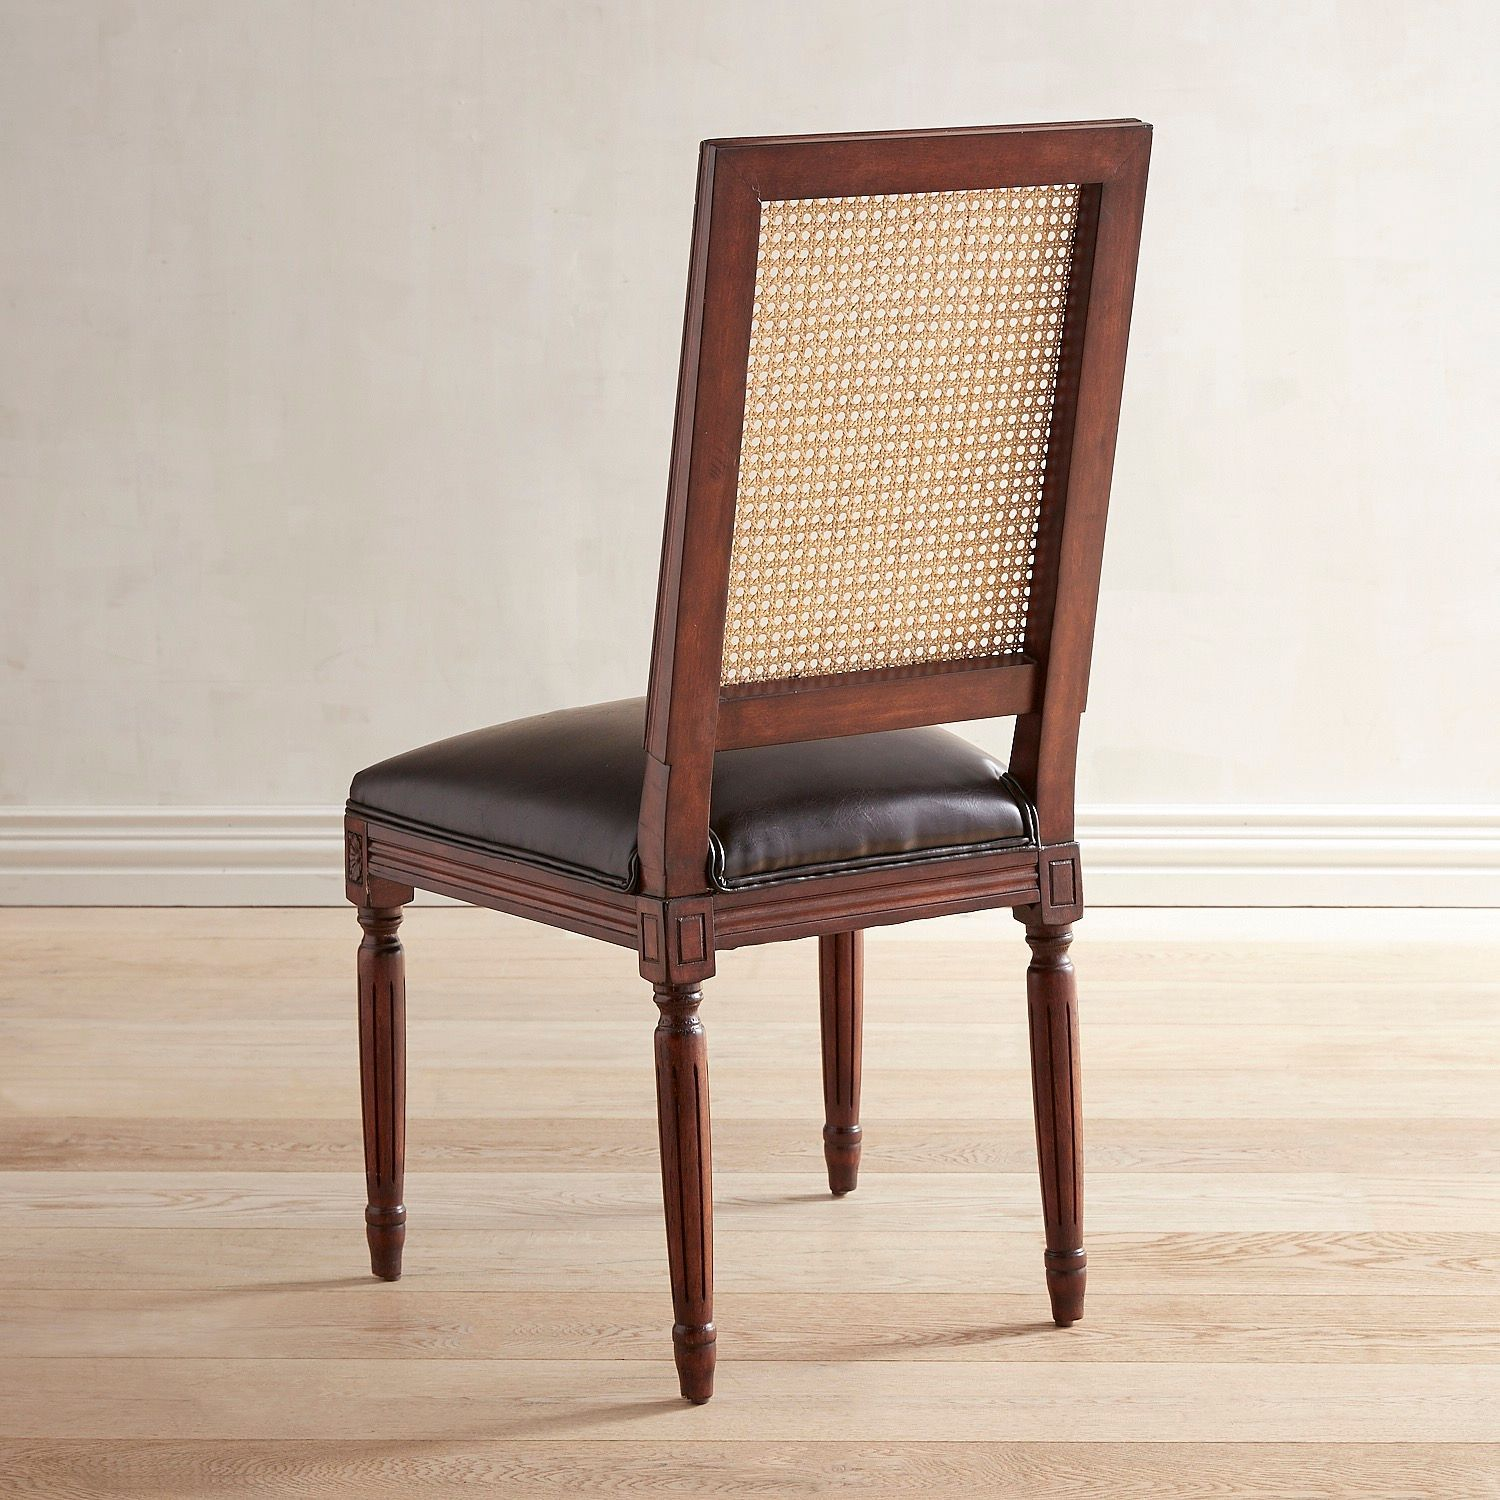 Joseph Caned Back Dining Chair Dining chairs, Chair